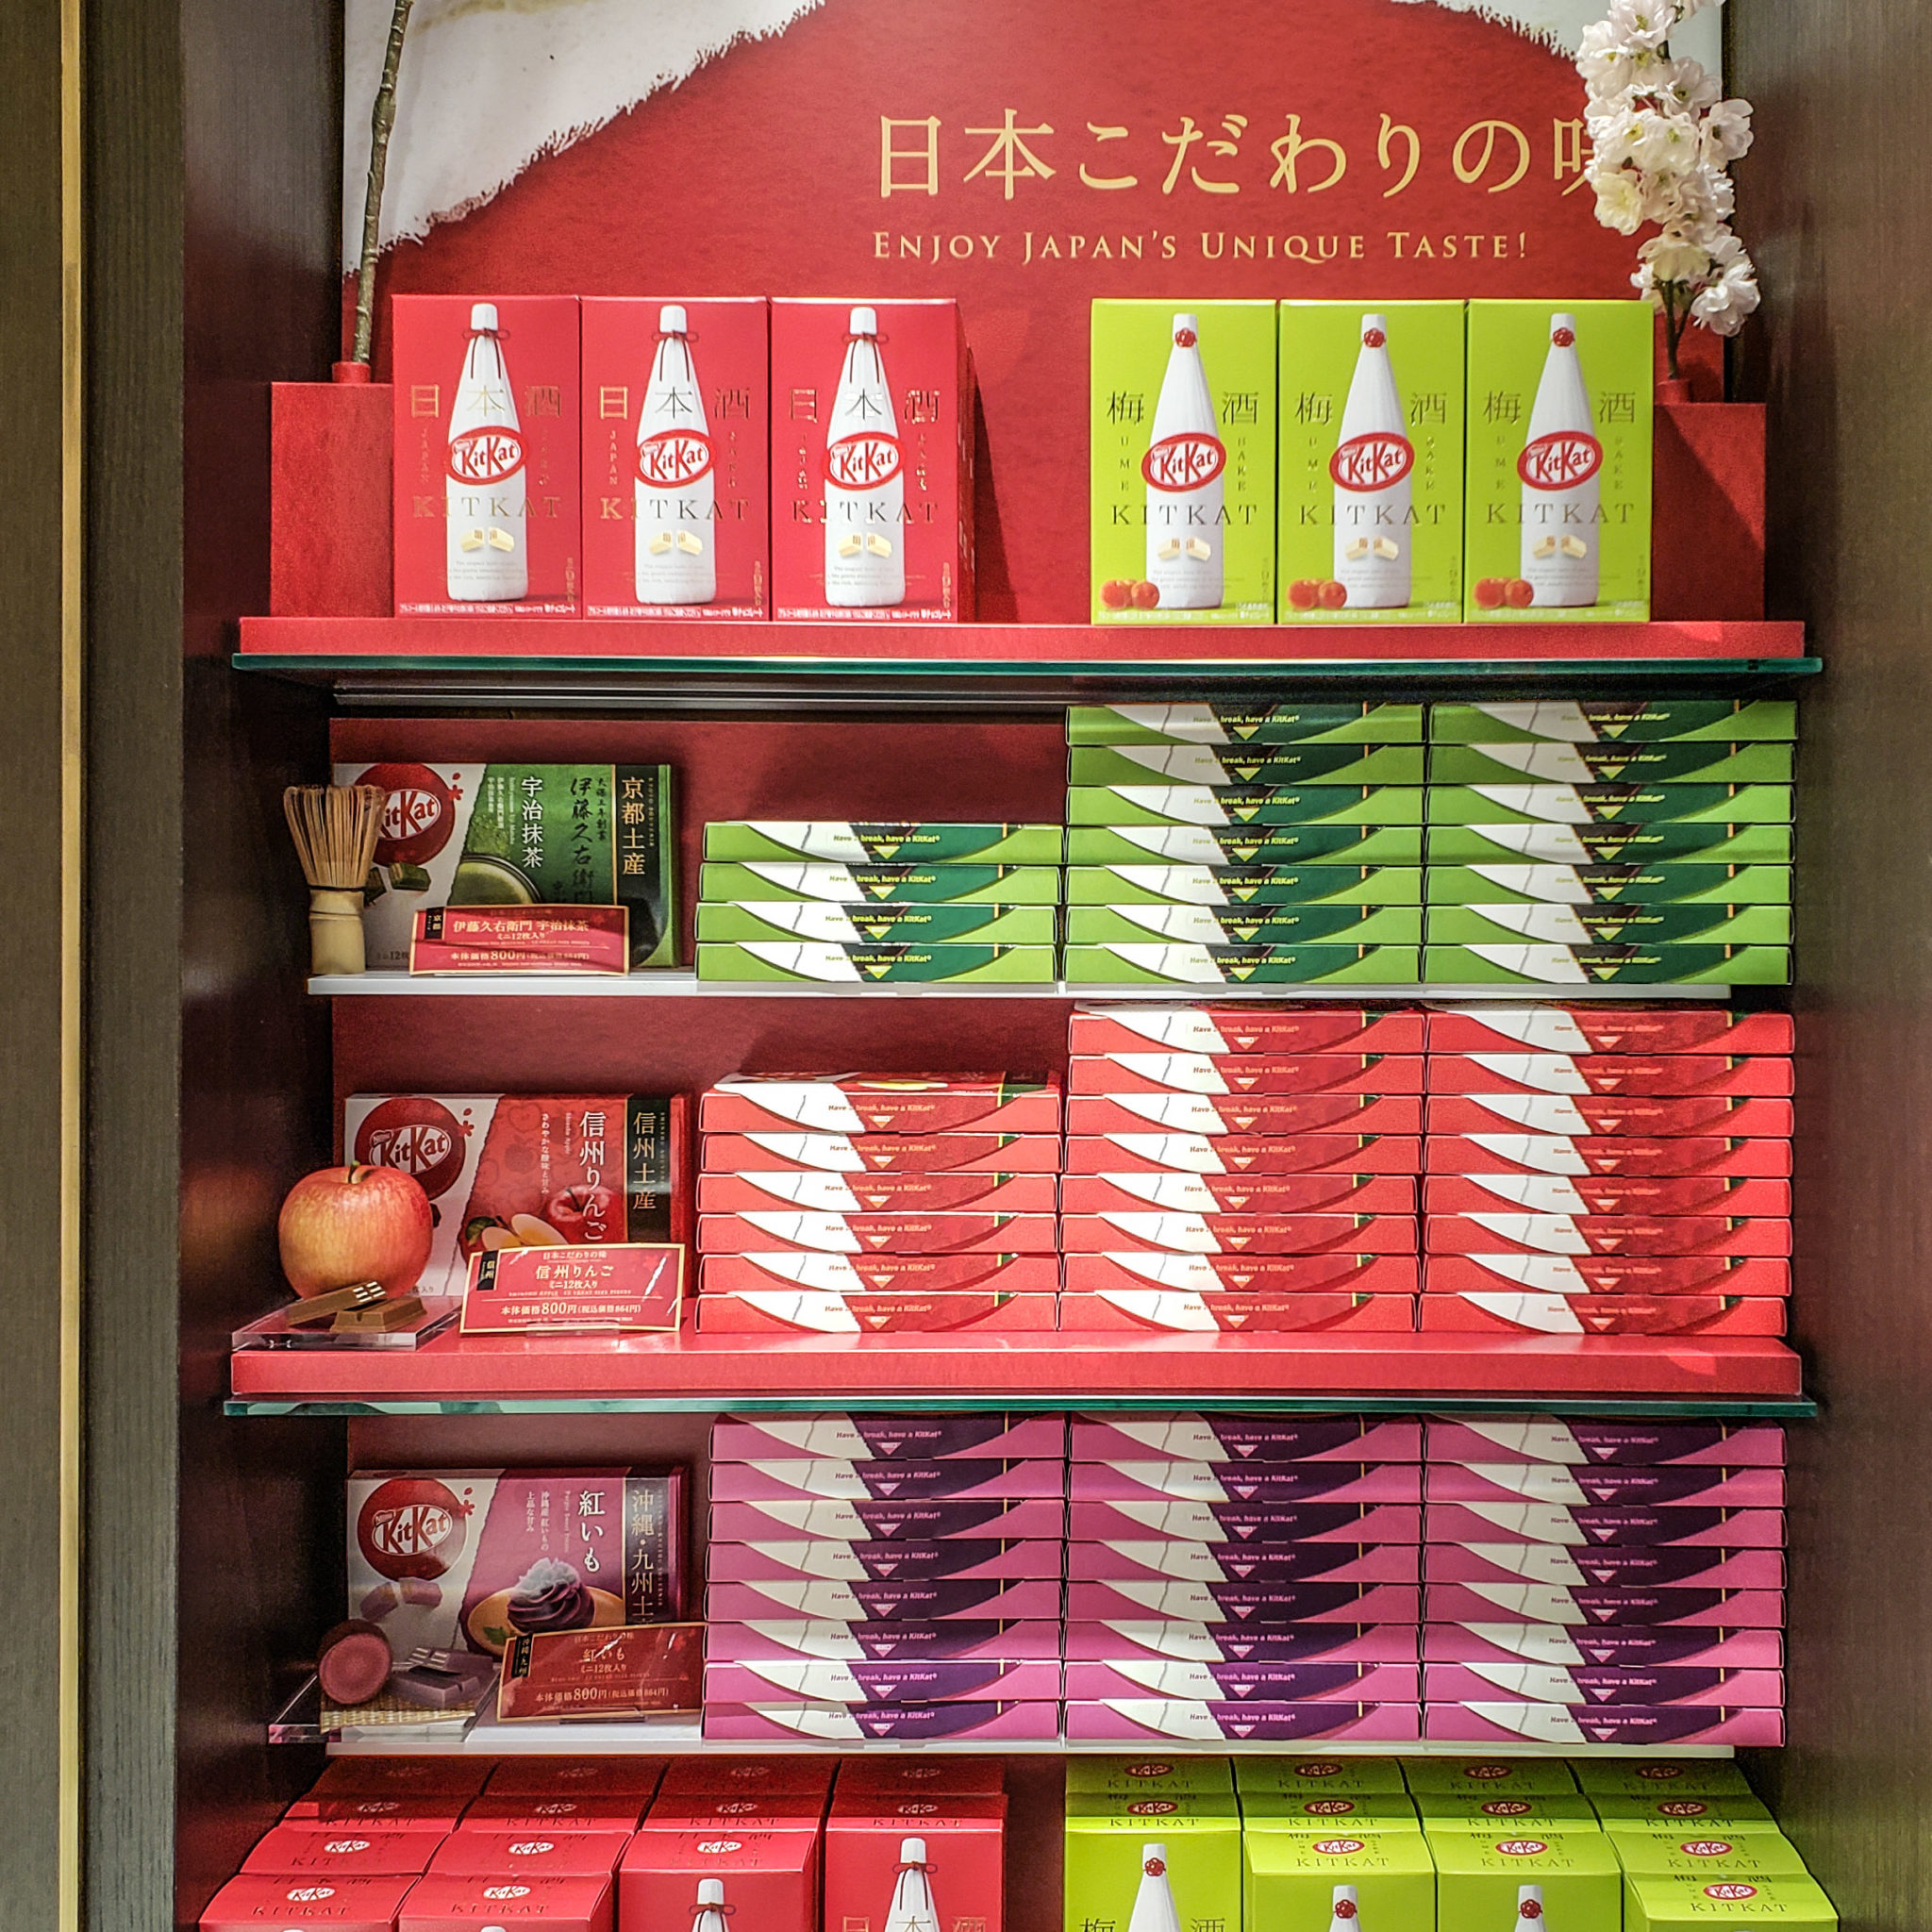 First Time in Tokyo? Here's a Roundup of the Right Things to Splurge On!